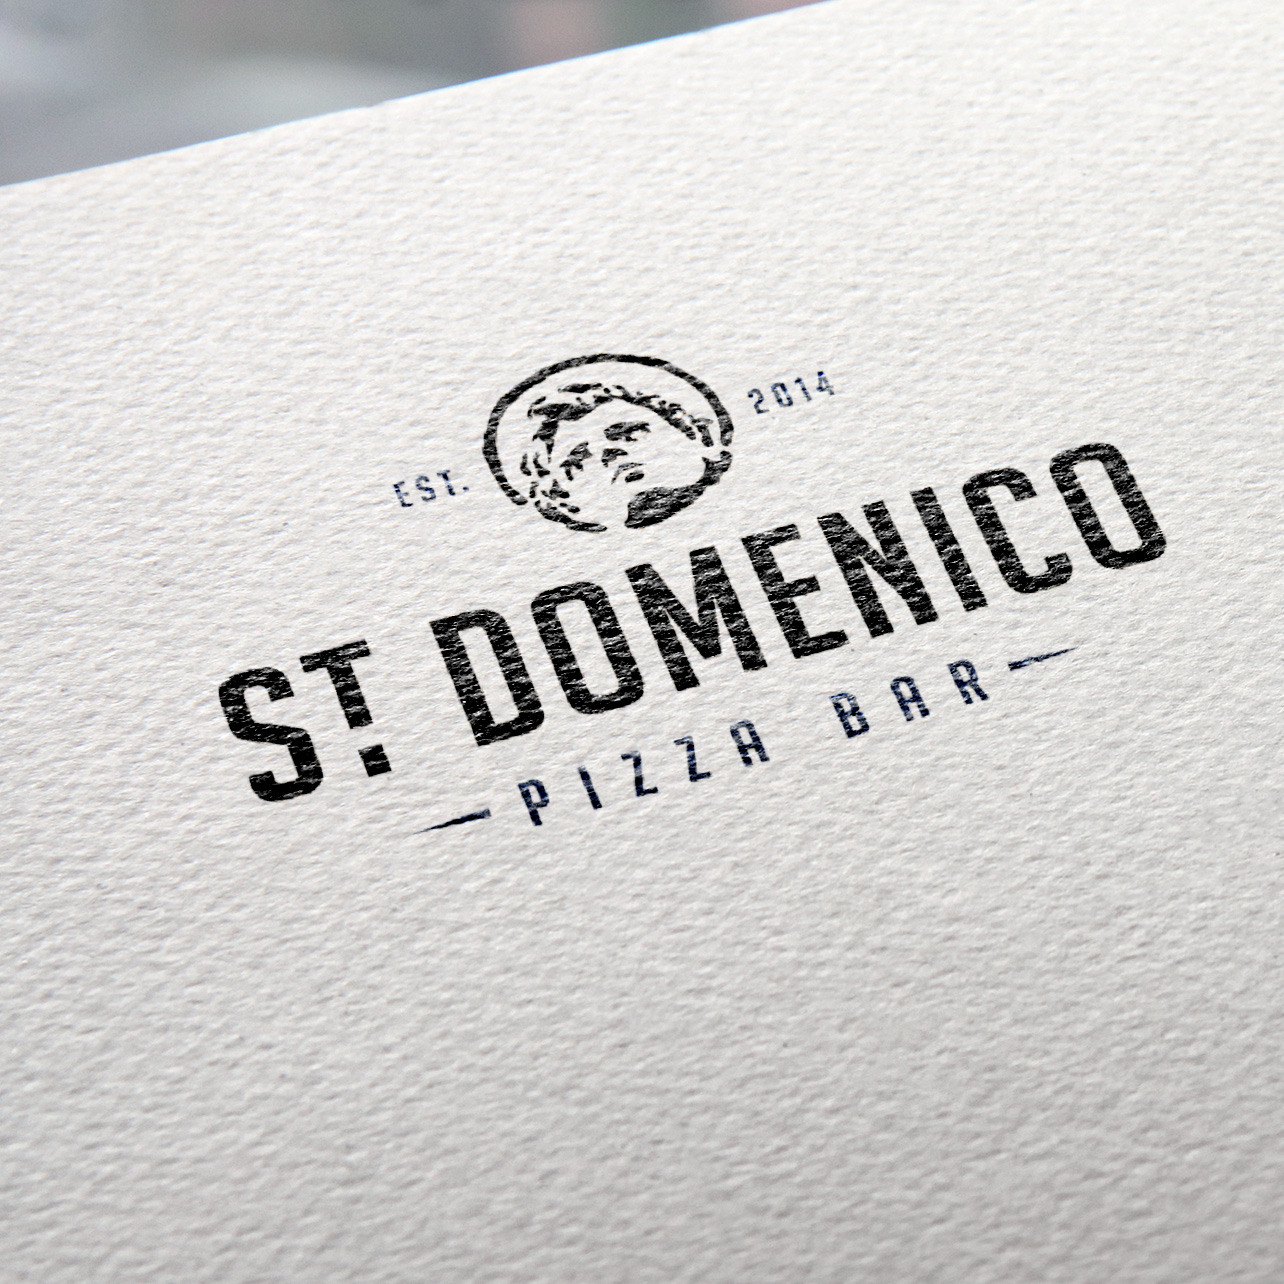 St Domenico pizza bar